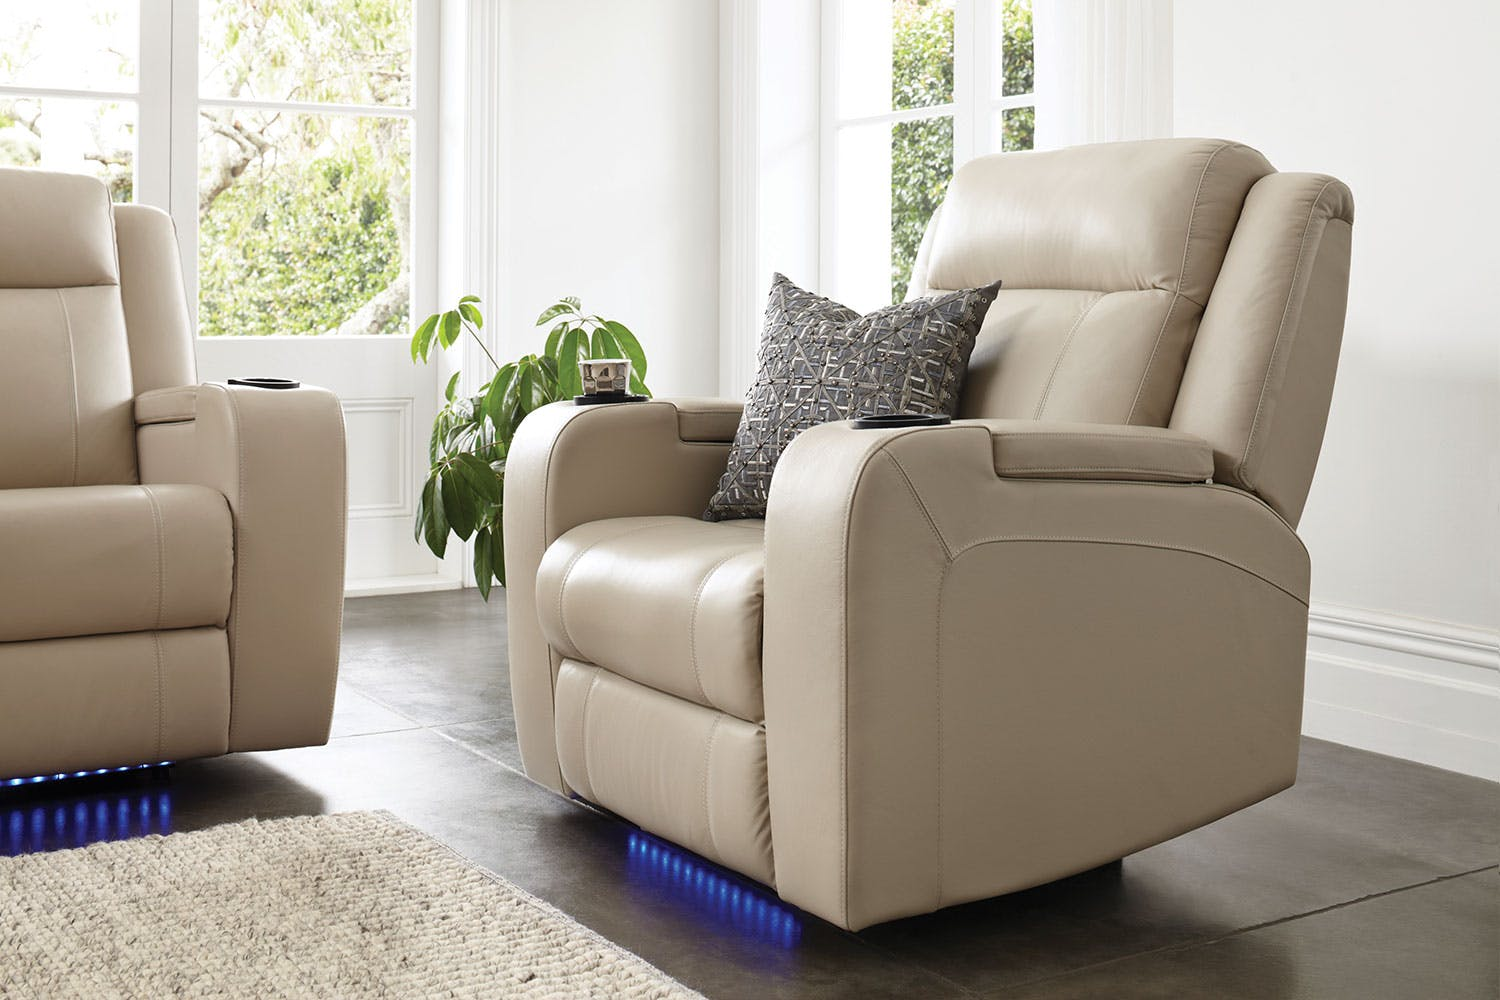 marina leather recliner chair by synargy harvey norman new zealand